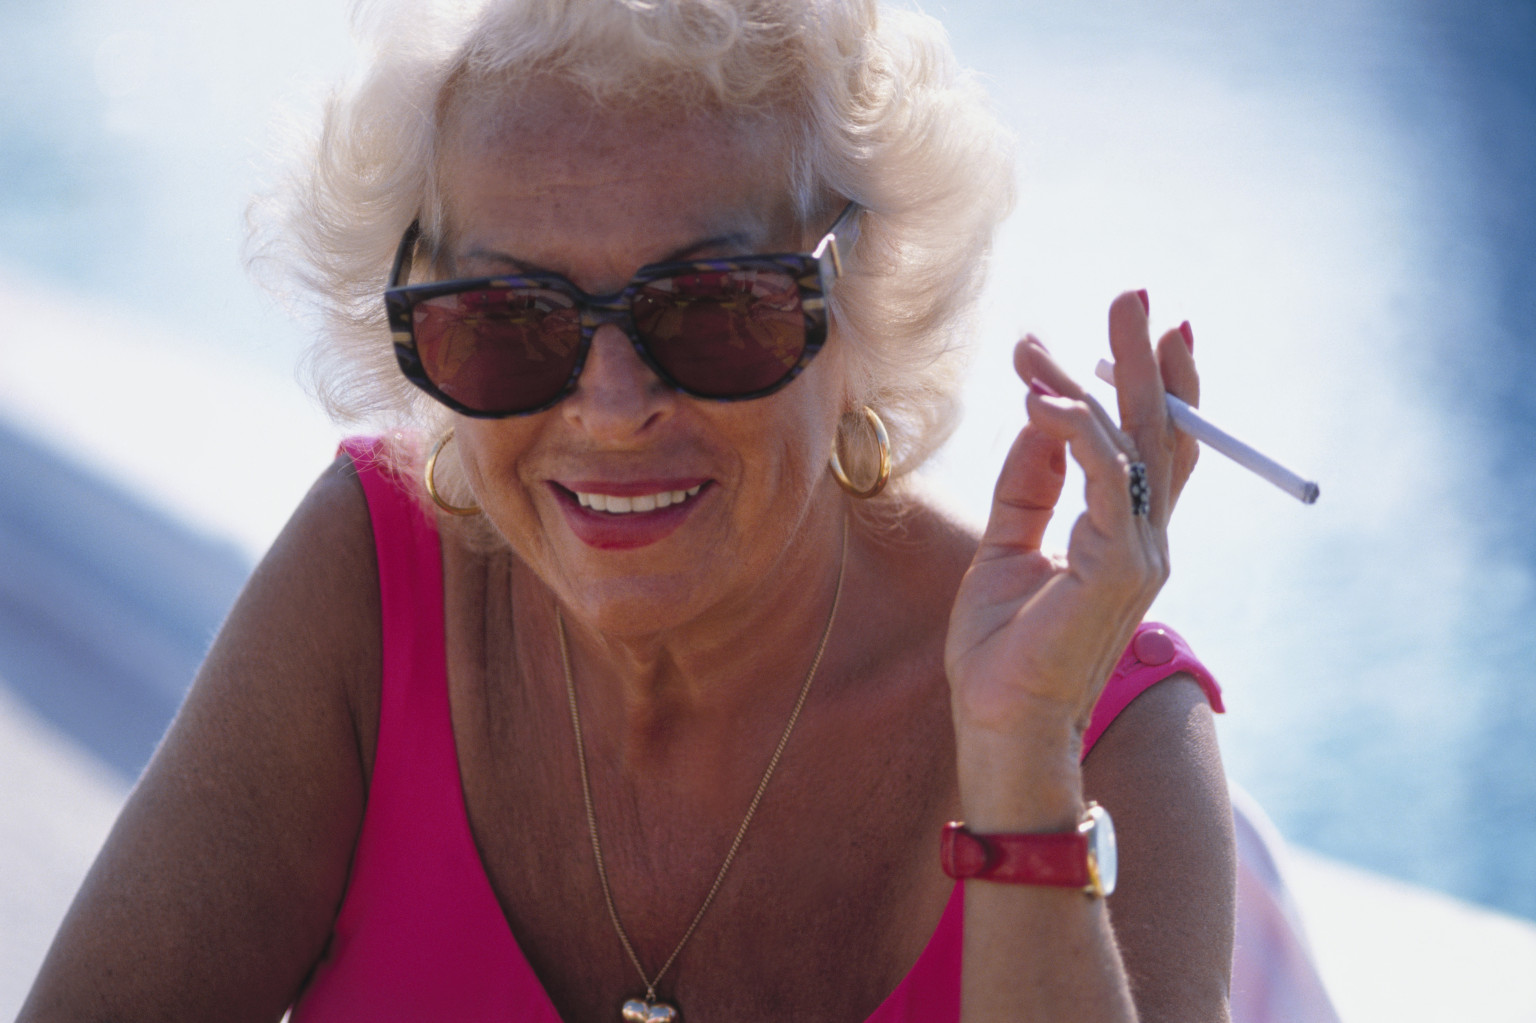 http://i.huffpost.com/gen/1329691/images/o-OLDER-PERSON-SMOKING-facebook.jpg